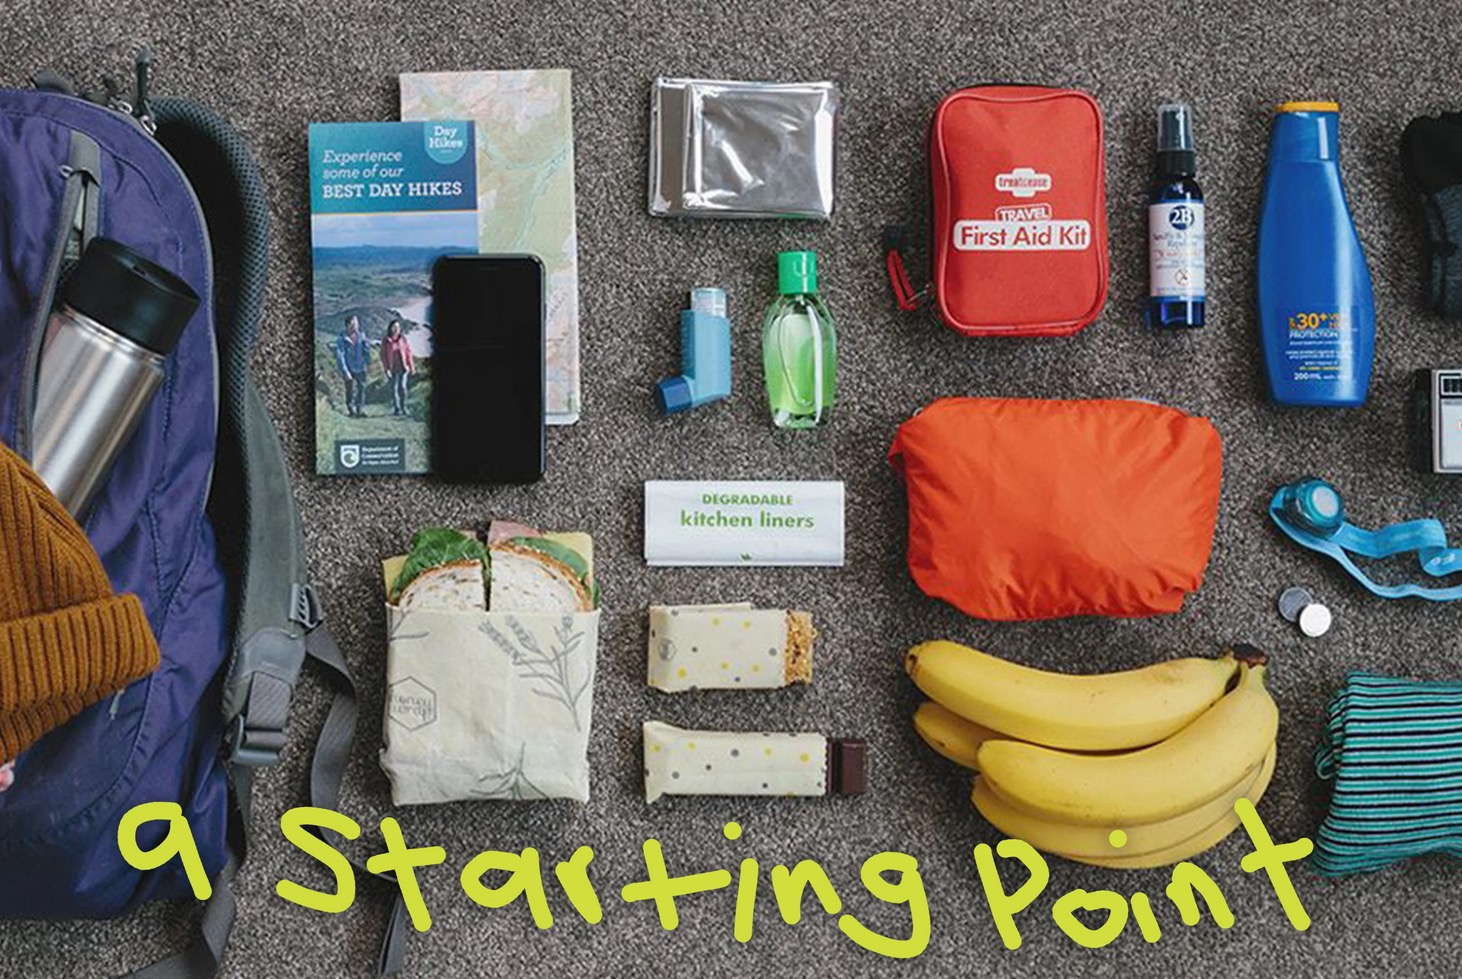 Items typically packed for a hiking trip